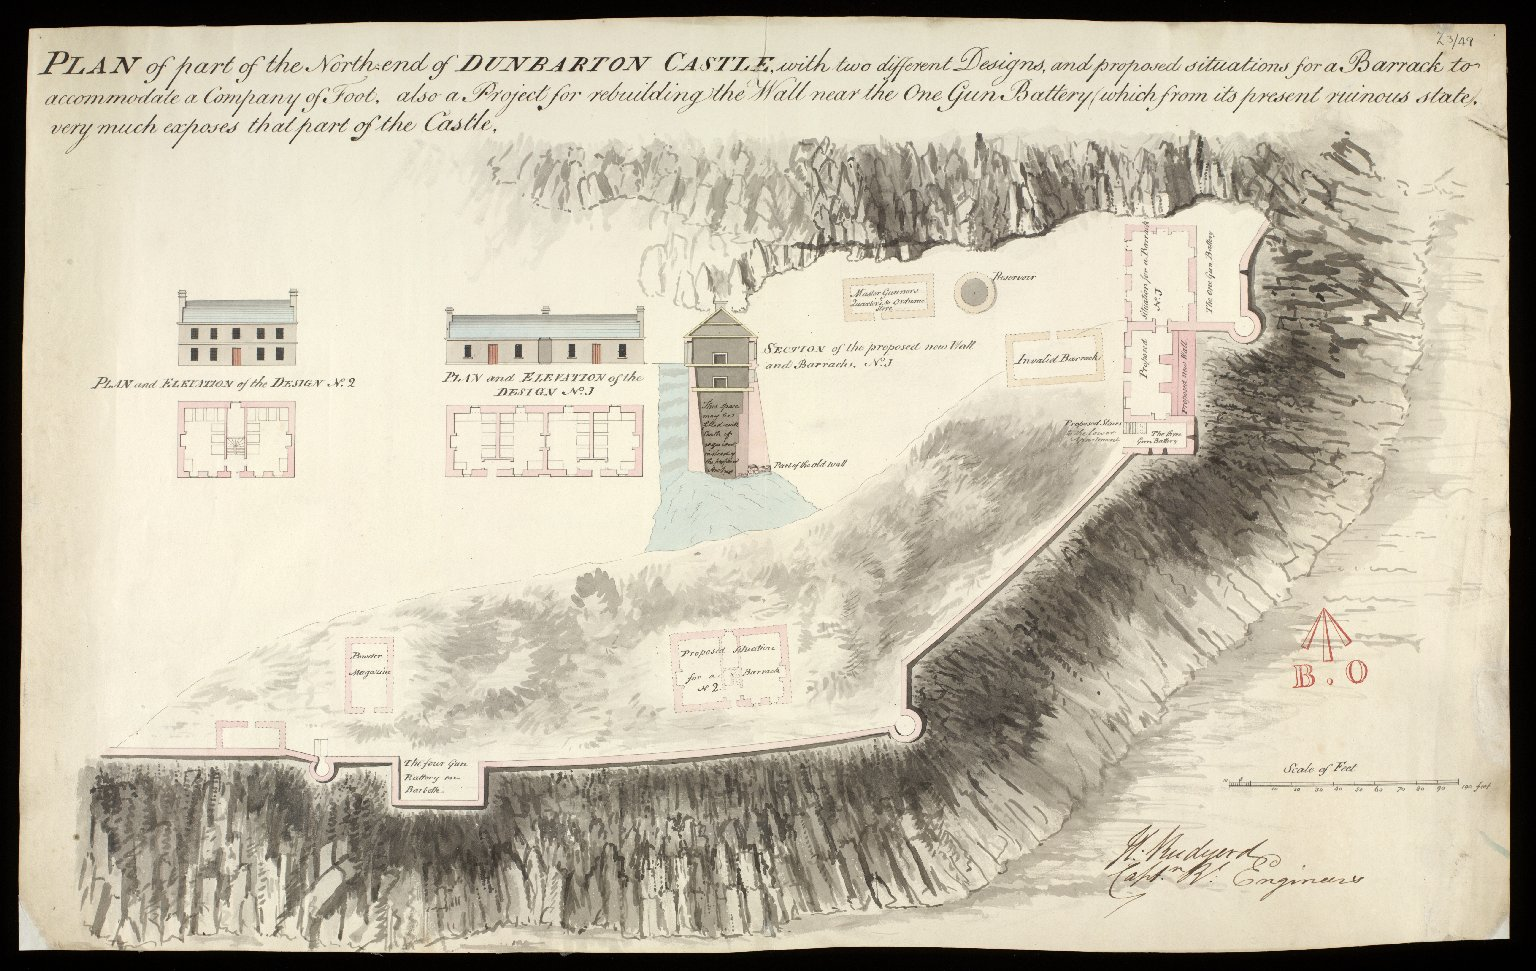 Plan of part of the north-end of Dunbarton [i.e. Dumbarton] Castle [1 of 1]